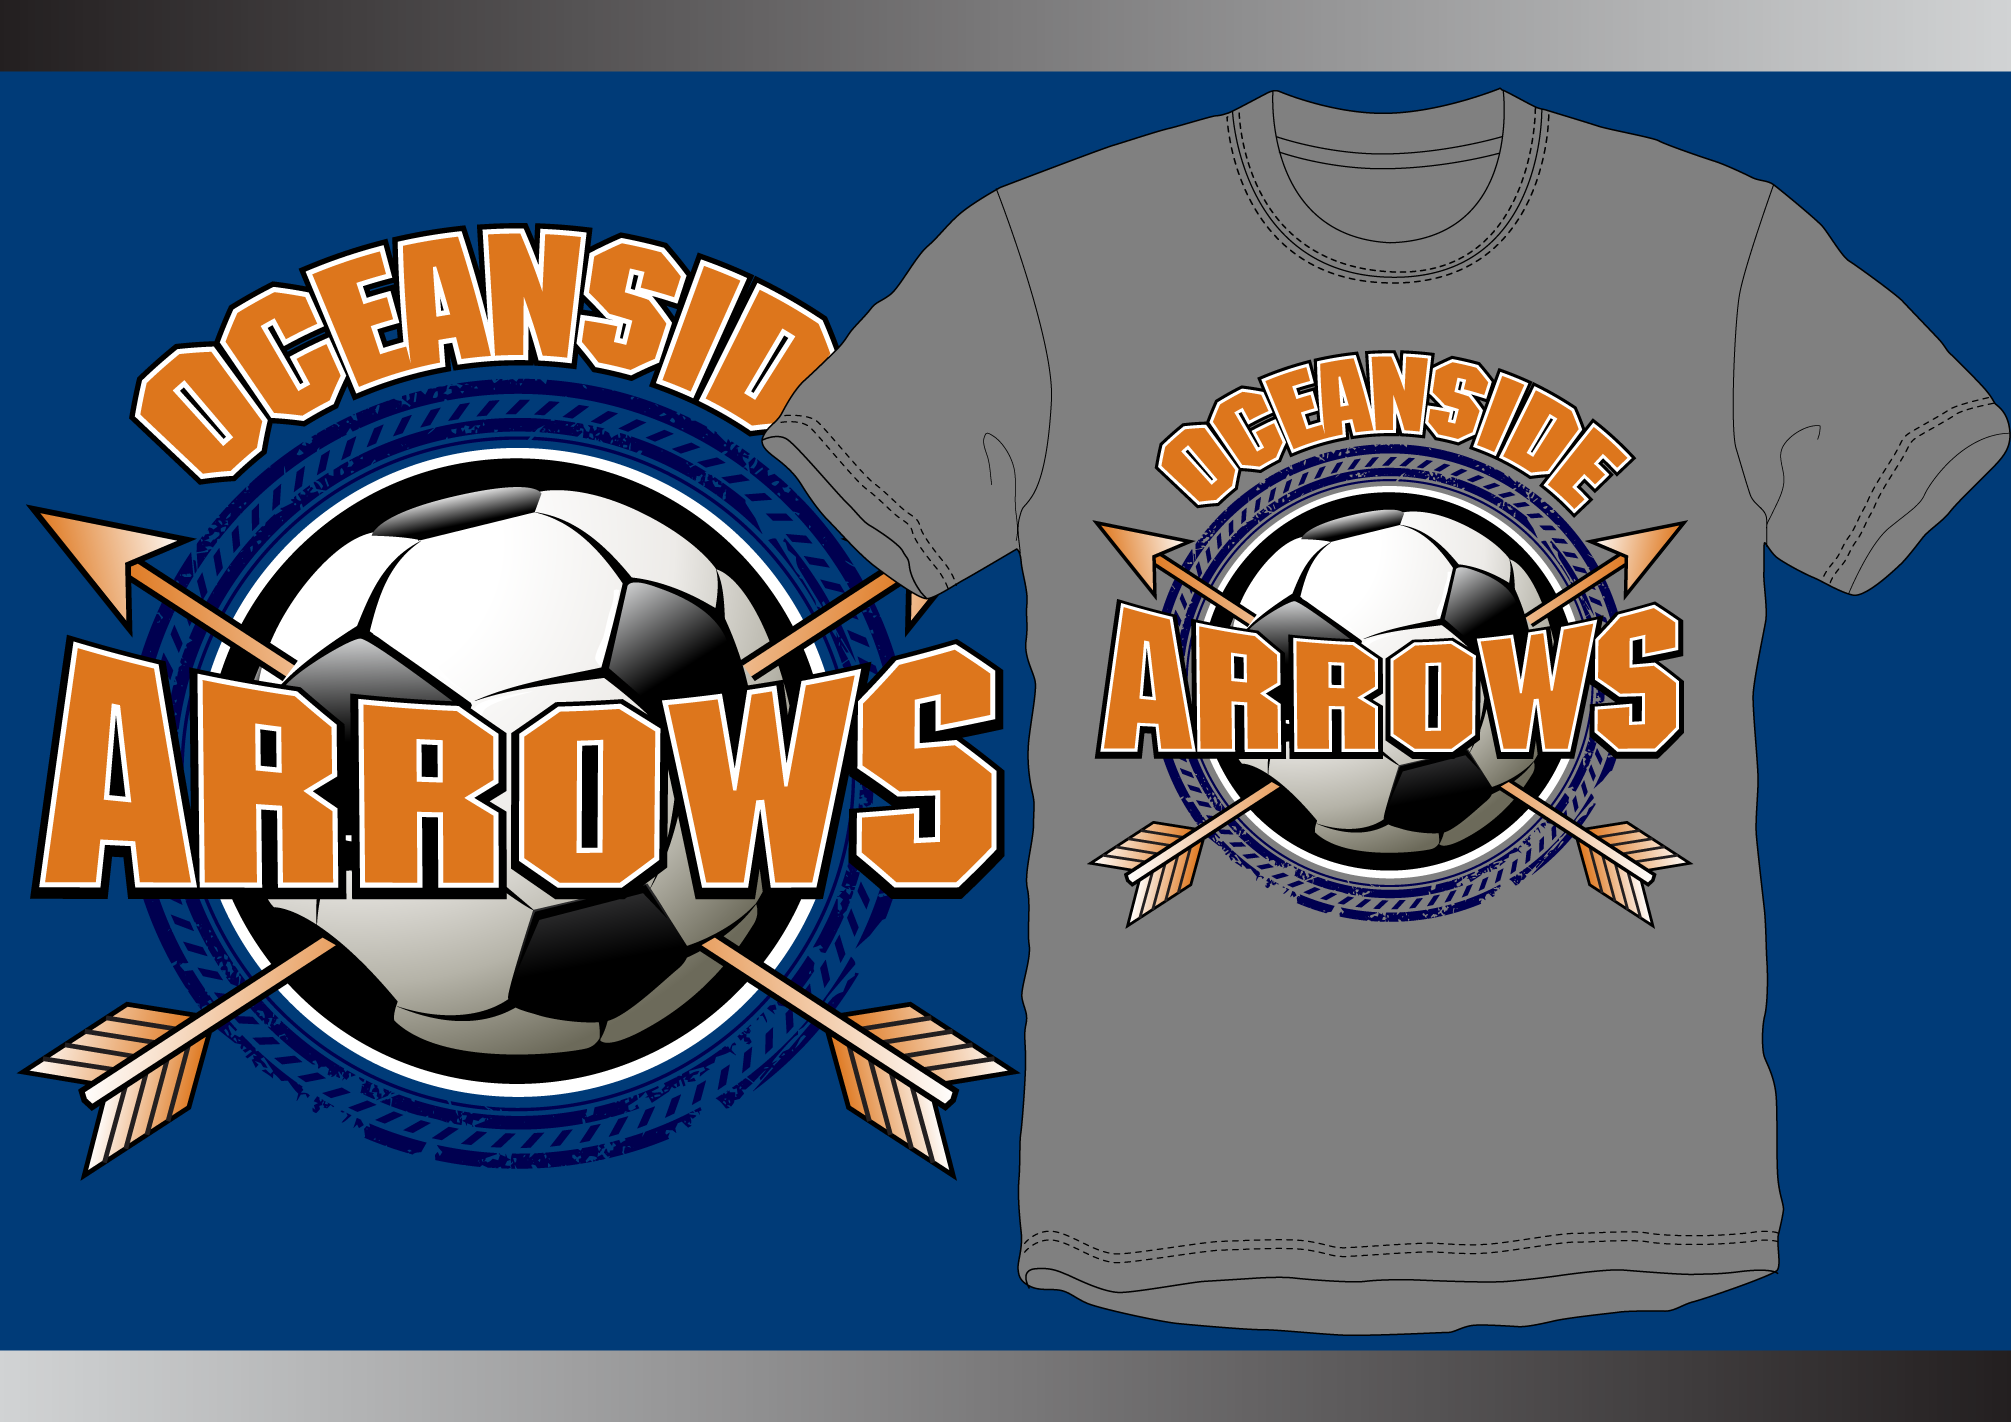 Boy's soccer team looking for great logo for t-shirts